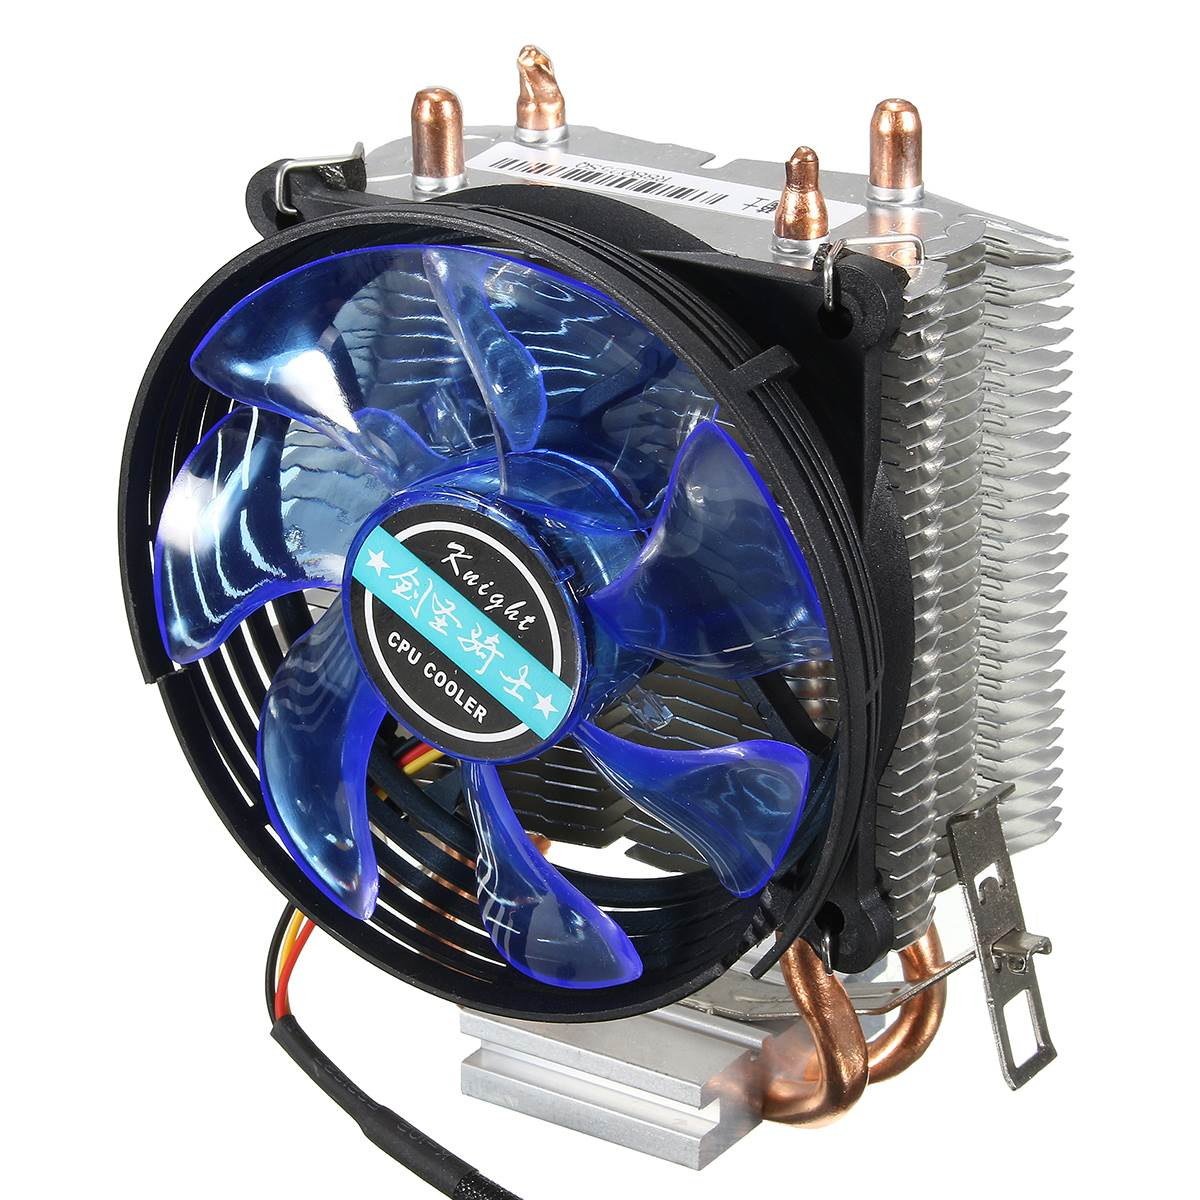 95x95x25mm LED Cooler Cpu Fan Heatsink Copper for Intel LGA775/1156/1155 for AMD AM2/AM2+/AM3 computer cooler radiator with heatsink heatpipe cooling fan for hd6970 hd6950 grahics card vga cooler